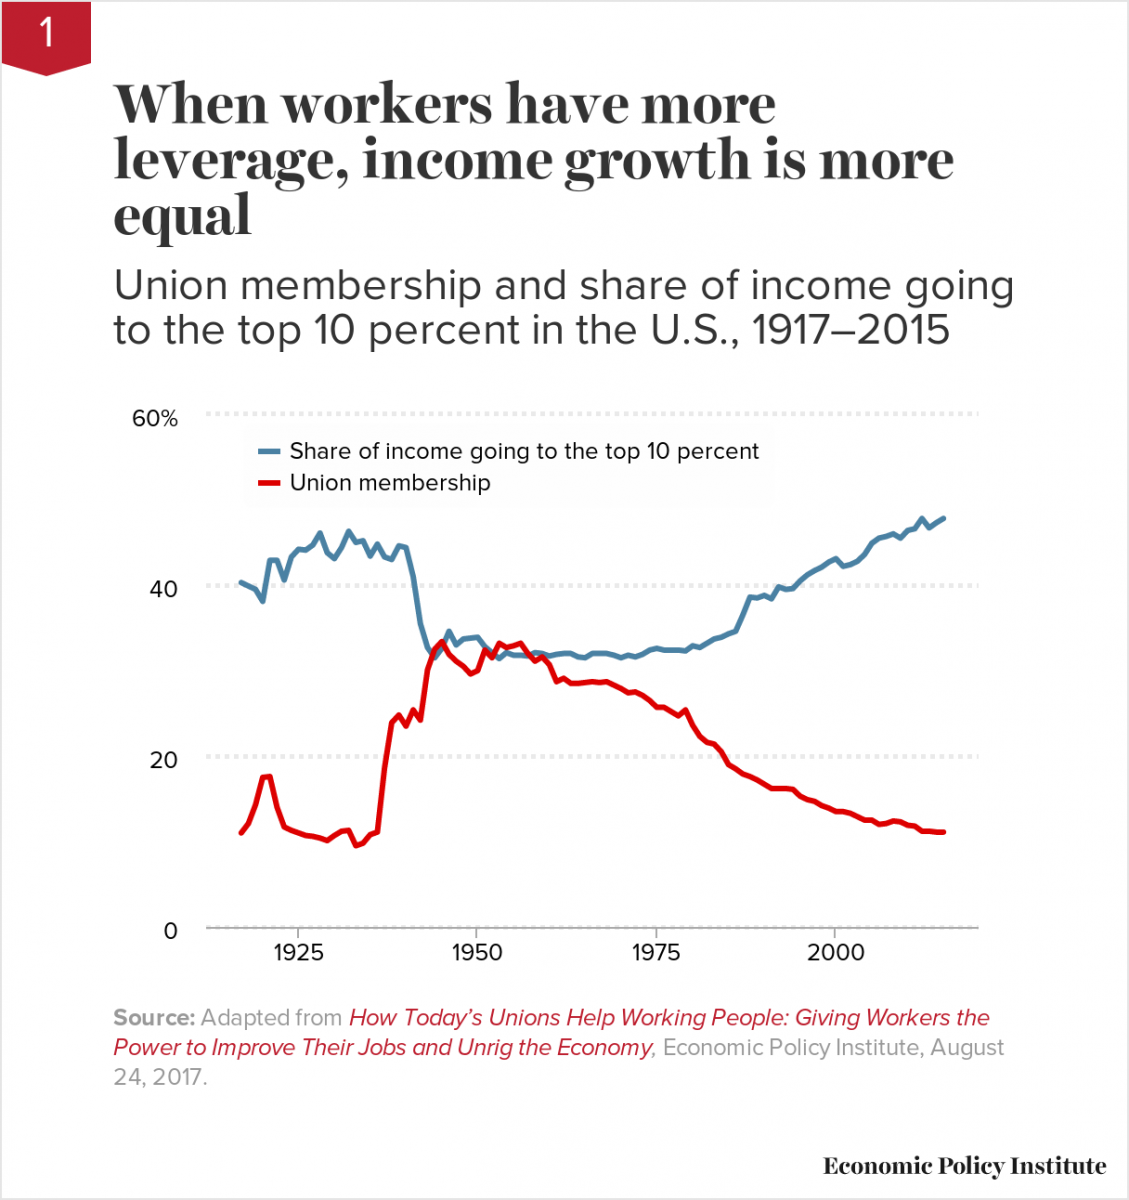 When workers have more leverage, income growth is more equal